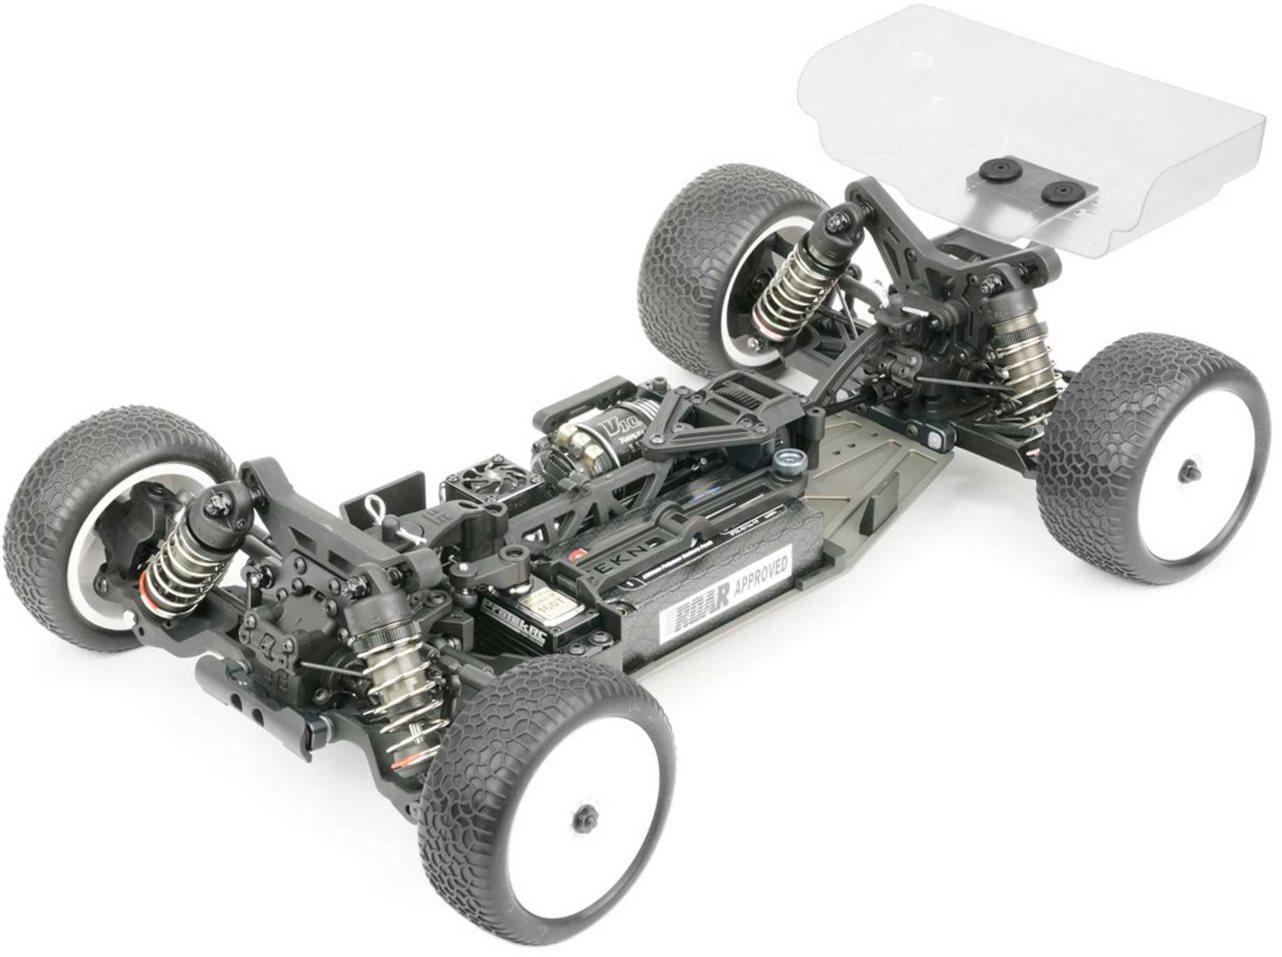 Tekno RC EB410.2 1 10th 4WD Competition Electric Buggy Kit